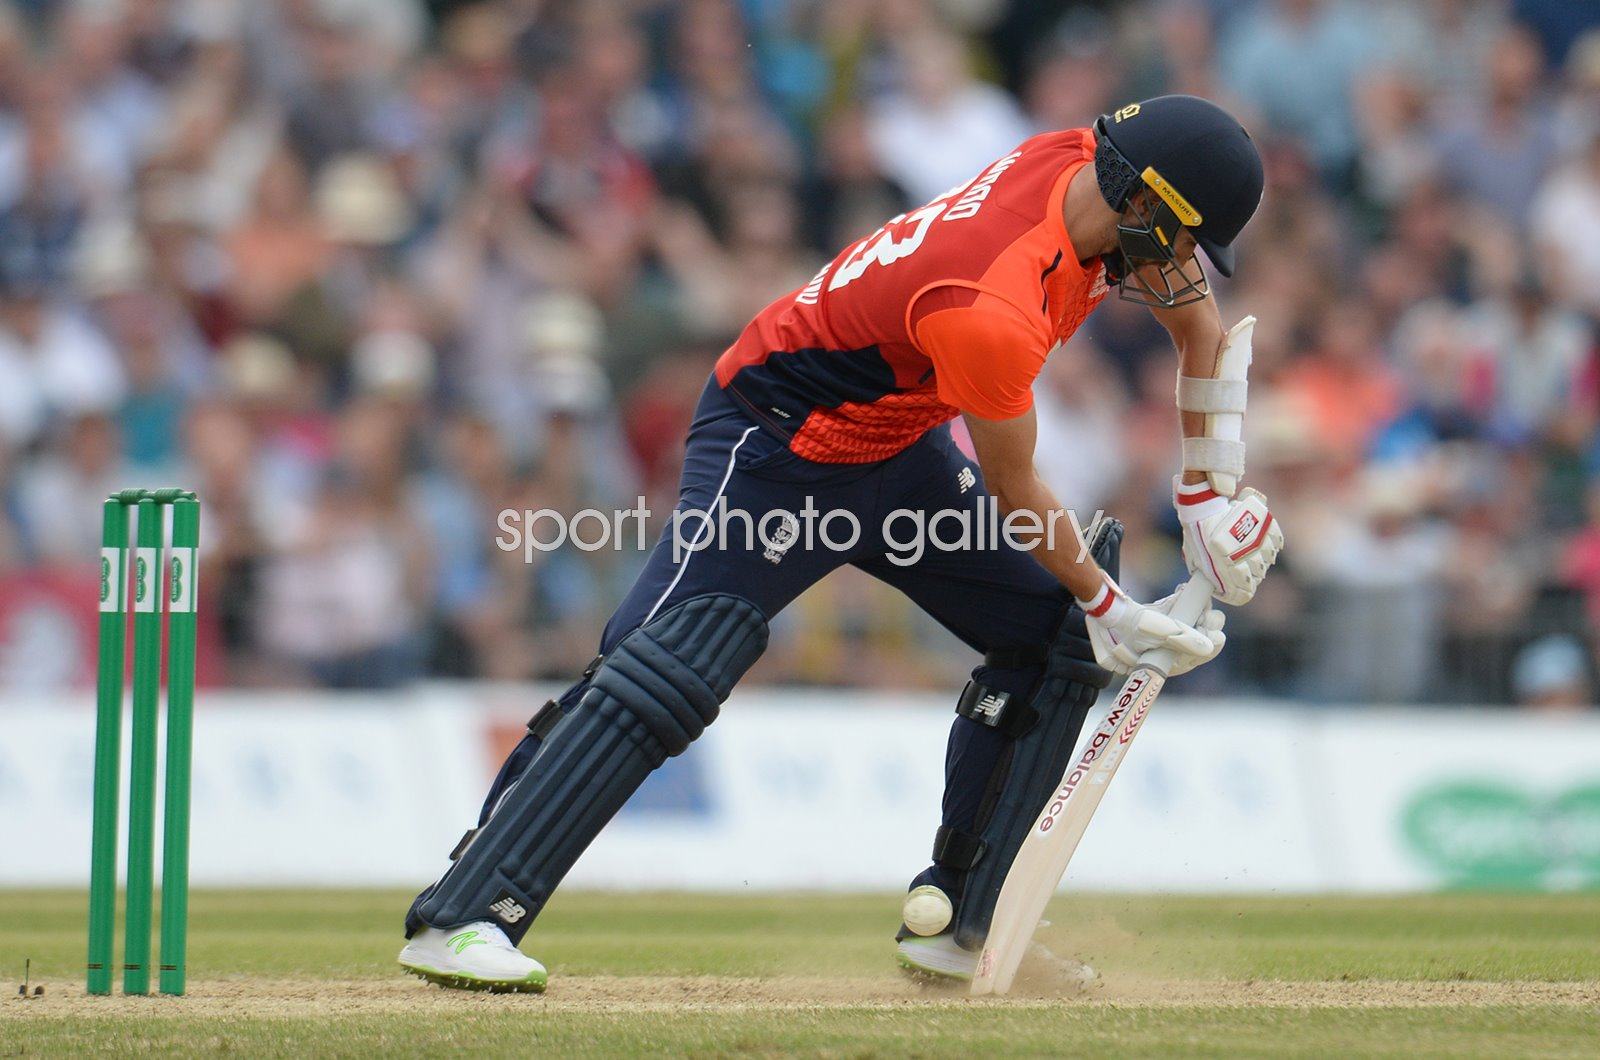 Safyaan Sharif Scotland winning wicket v England ODI 2018